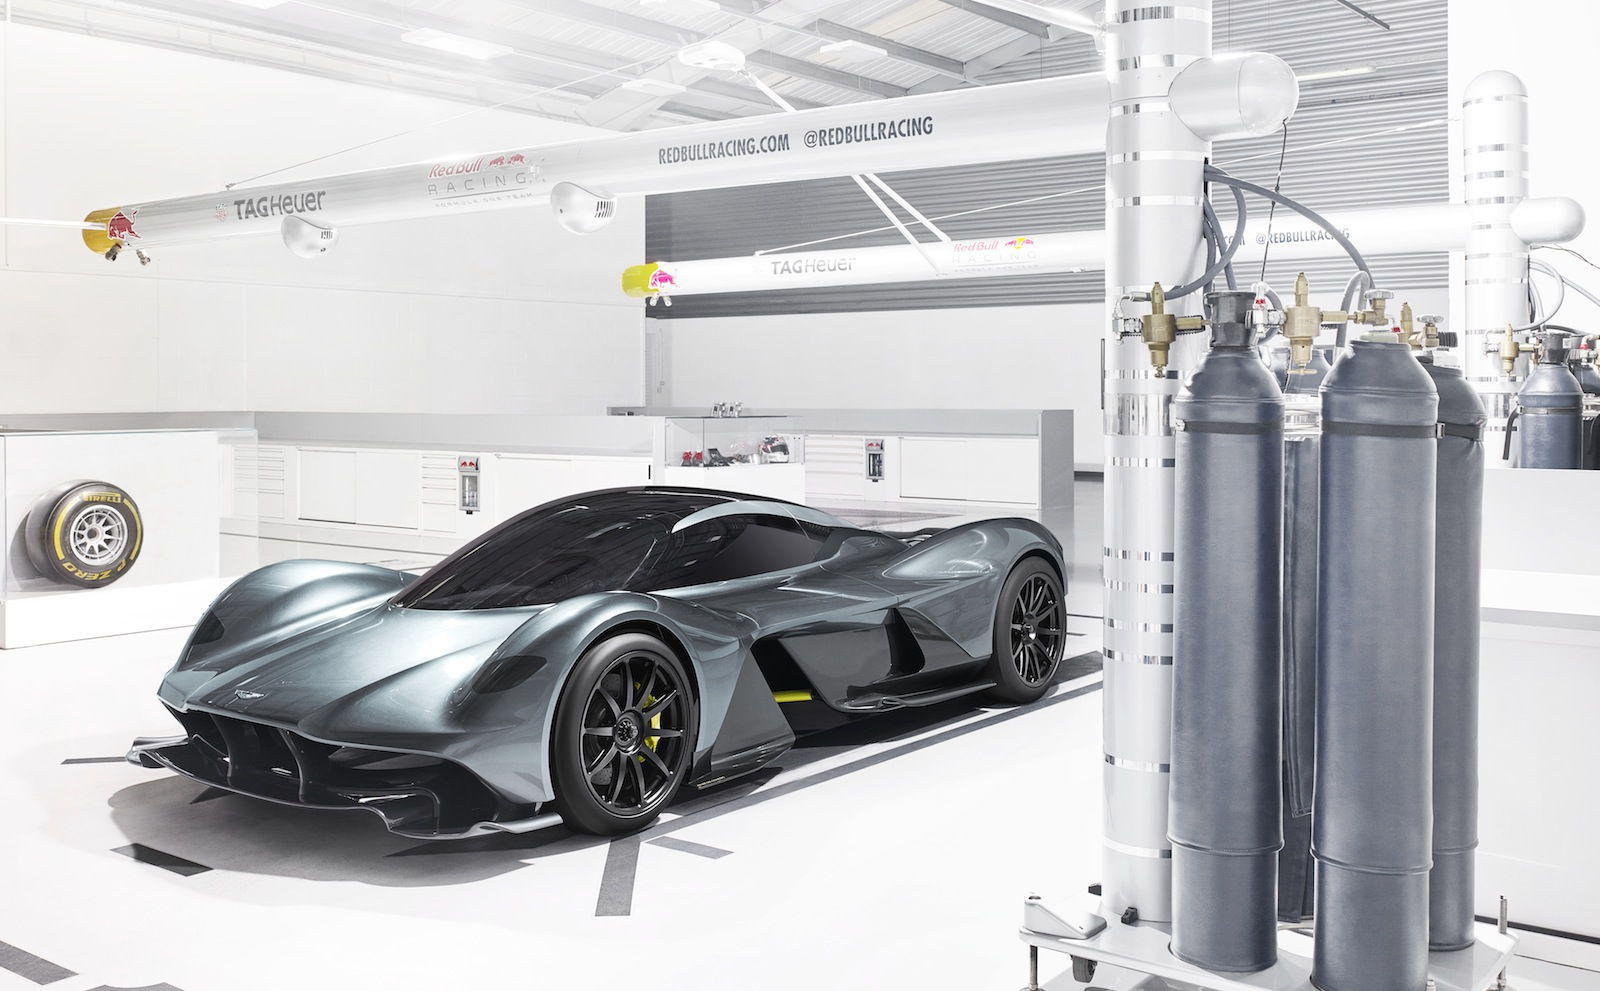 Aston Martin Valkyrie Owners Aren't Allowed to Be Fat